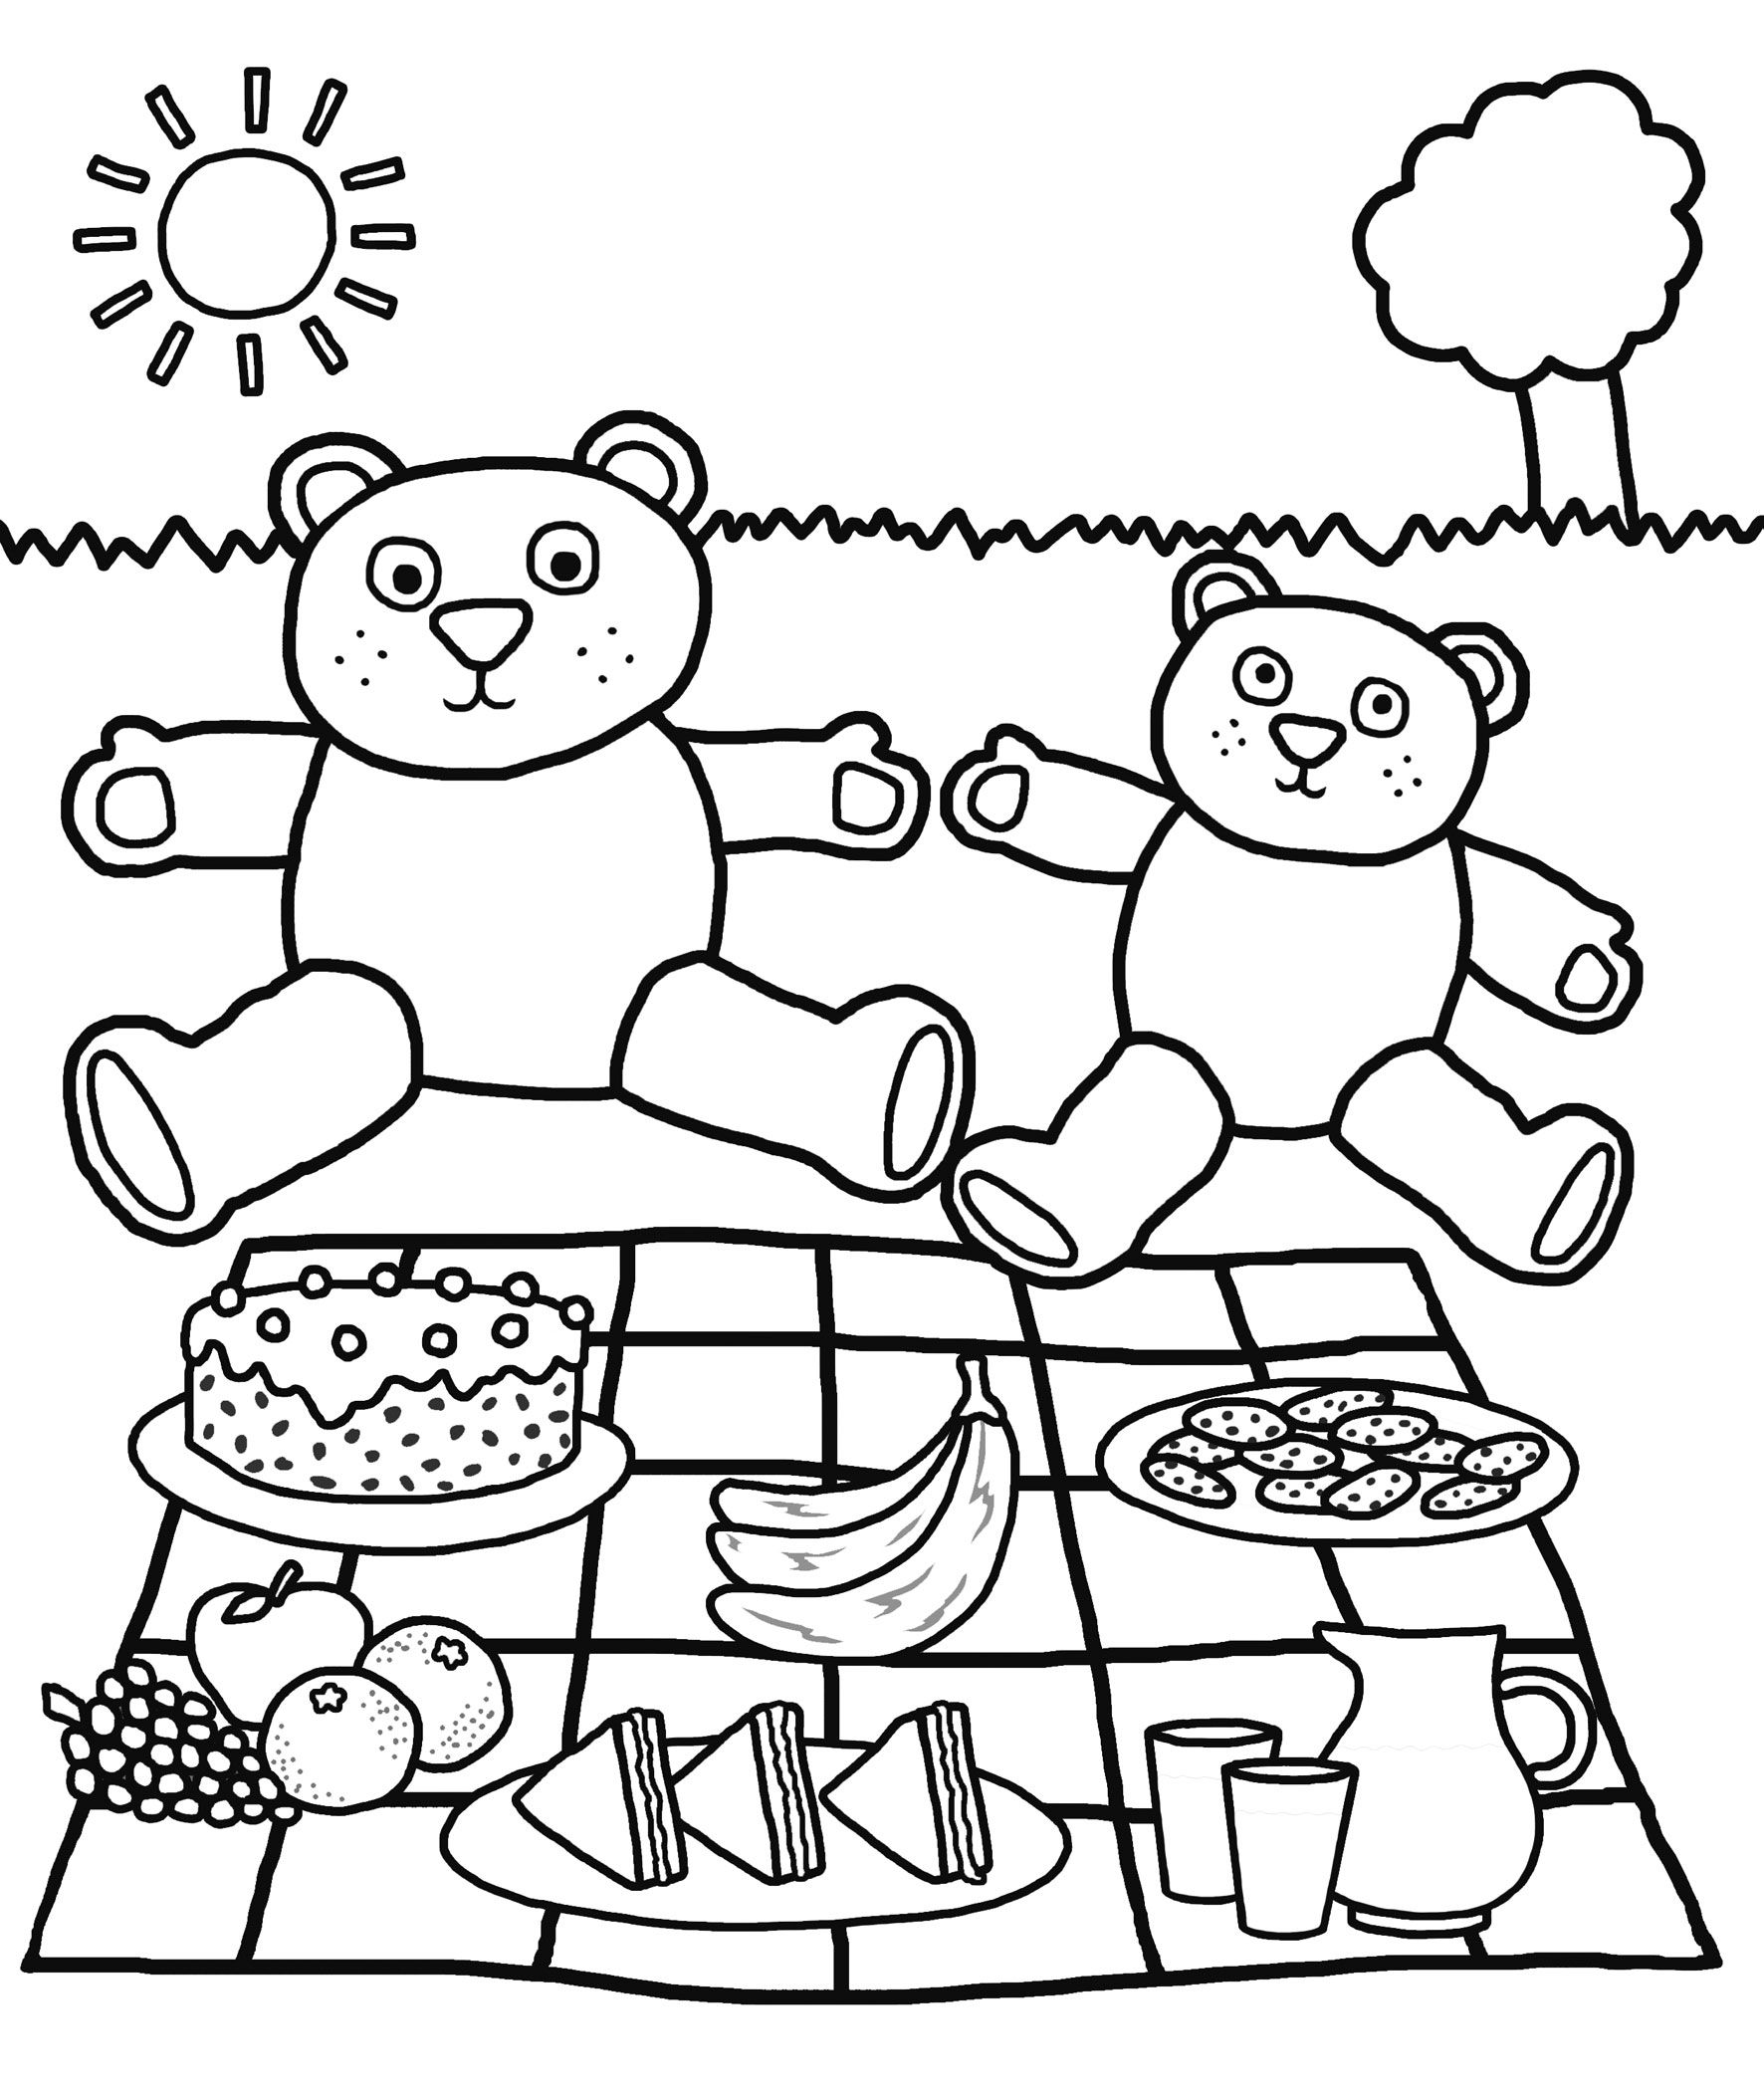 July 10 Is National Teddy Bear Picnic Day Enjoy This Fun